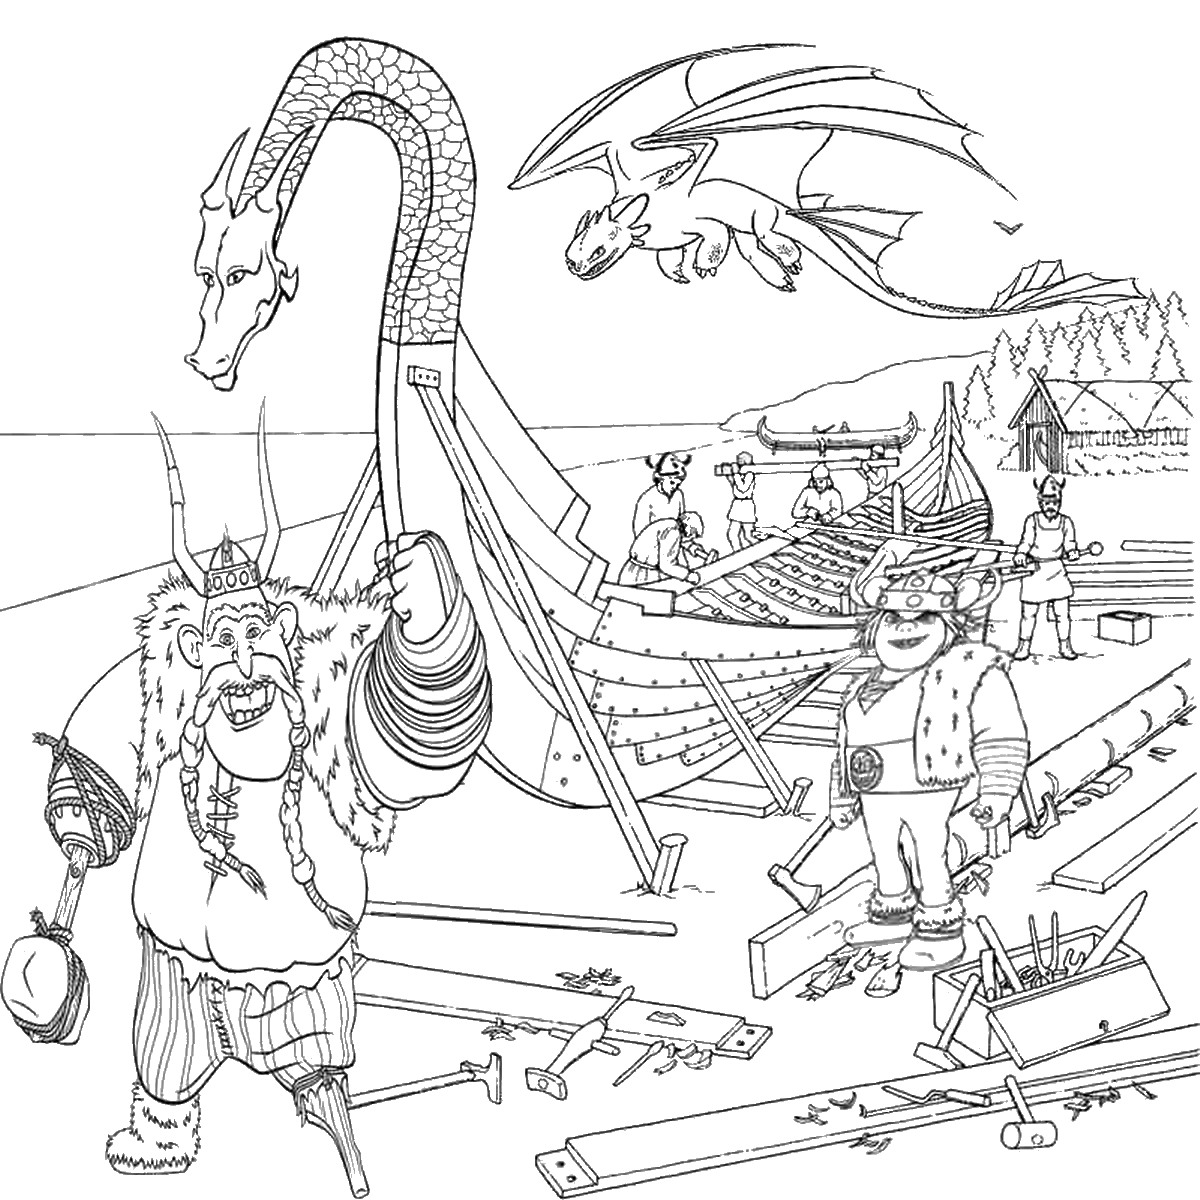 how to train your dragon coloring pages online how to train your dragon coloring pages to coloring online your dragon how train pages